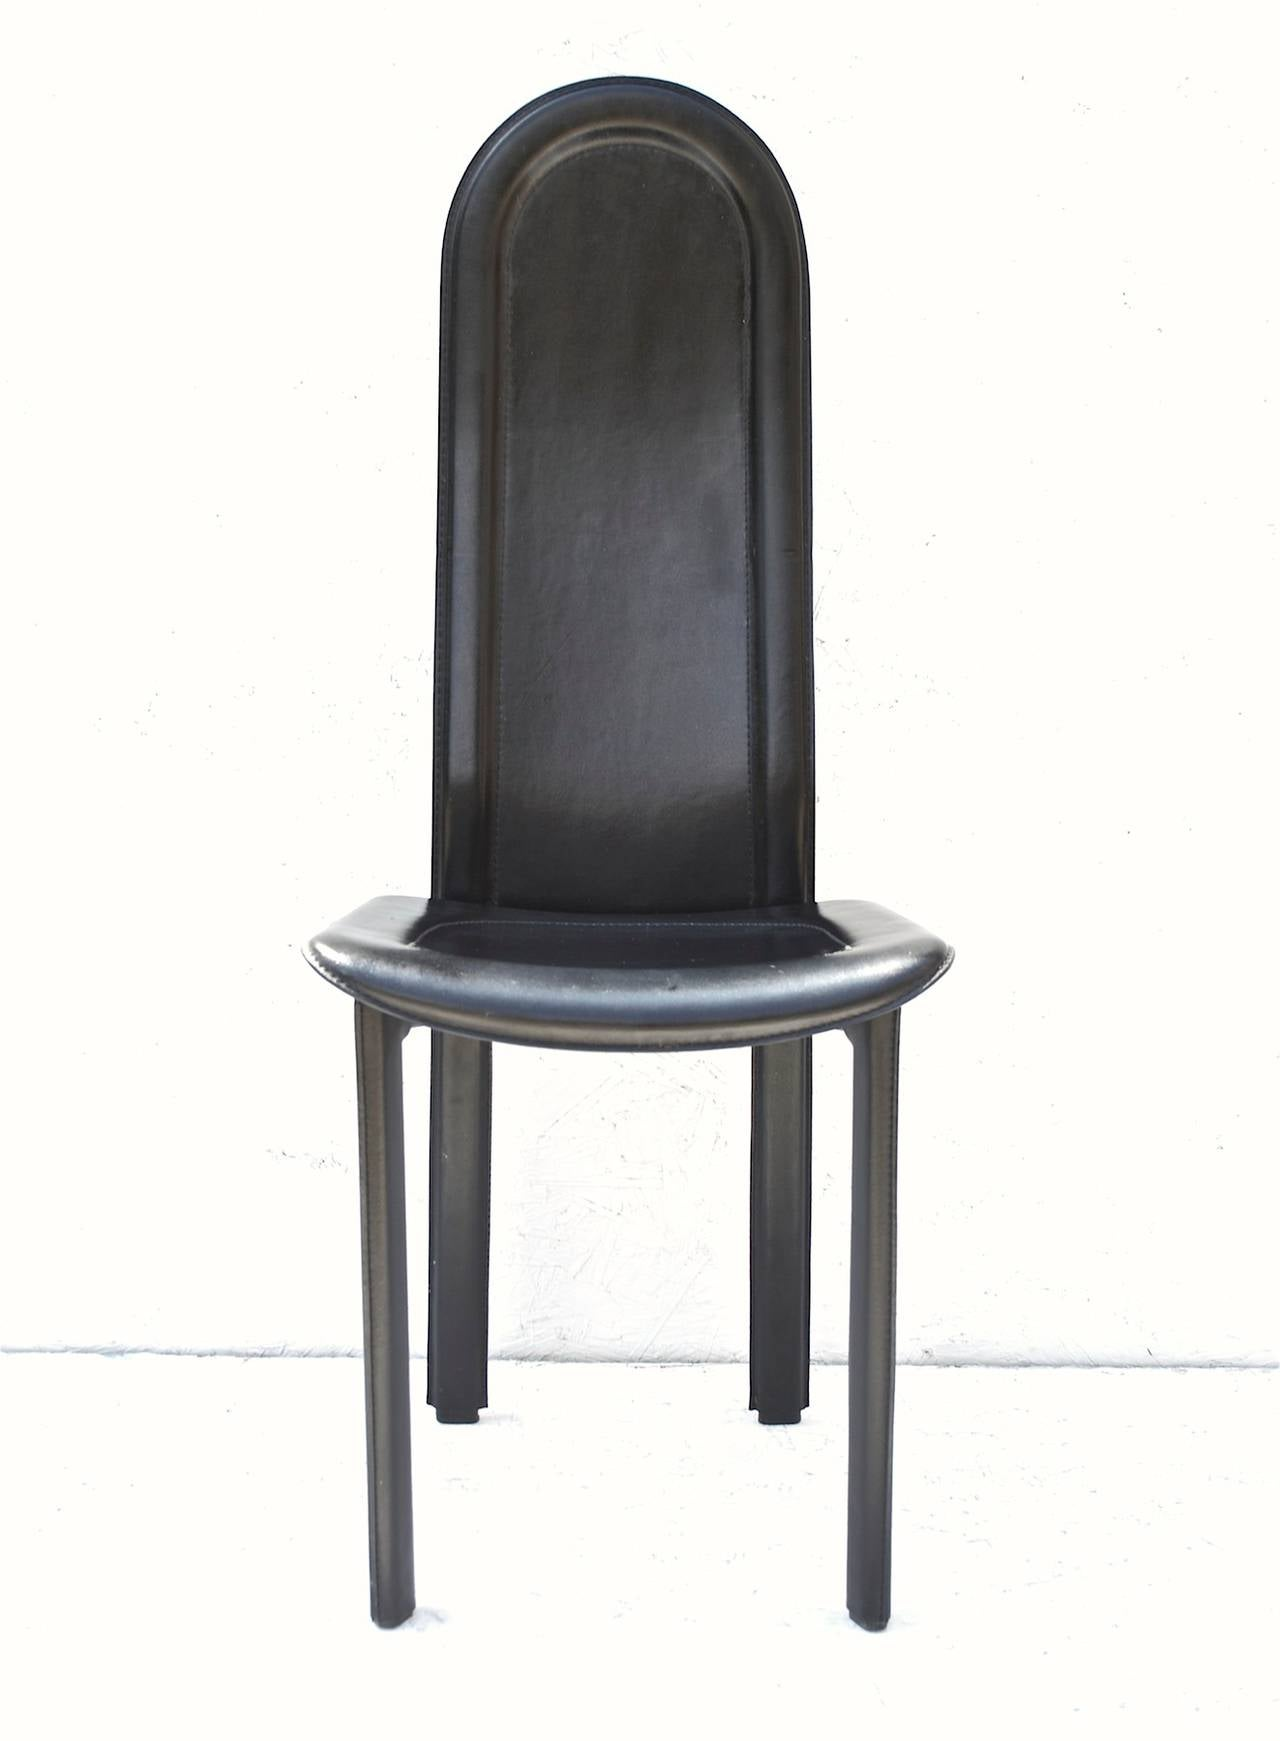 Black Leather Dining Chairs by Artedi U K For Sale at 1stdibs